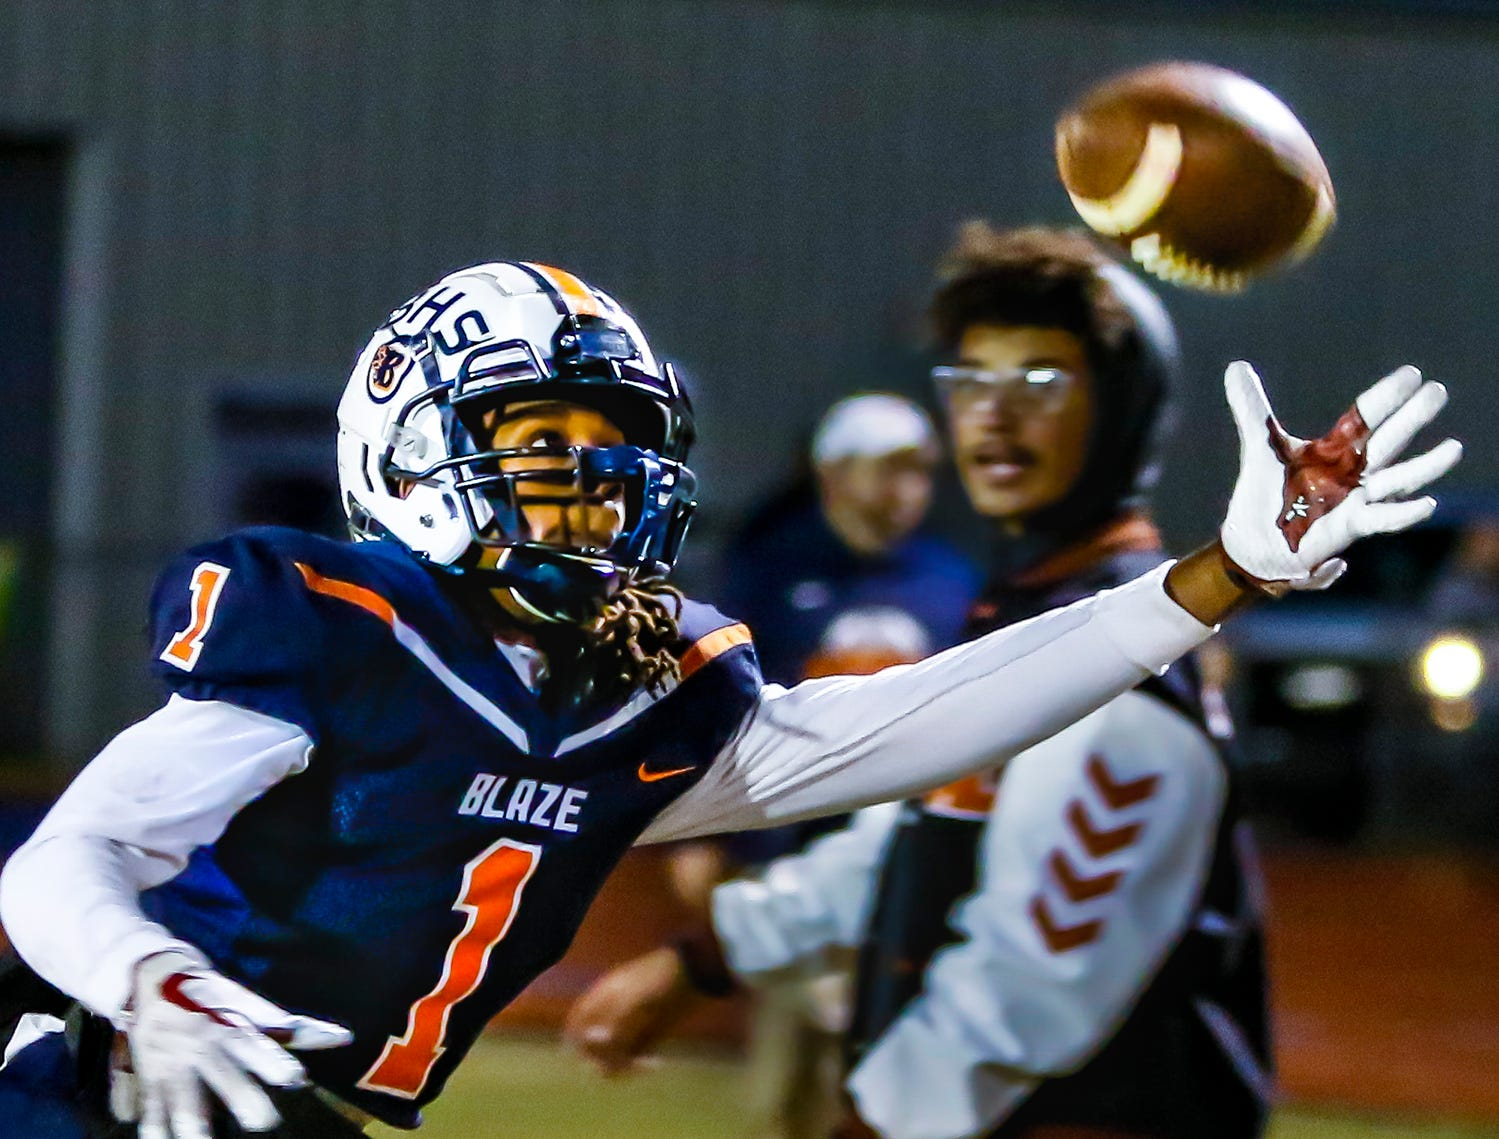 Blackman's Adonis Otey stretches for a pass completion.  Blackman defeated Lebanon 44-7 in the first round of the 6A playoffs.